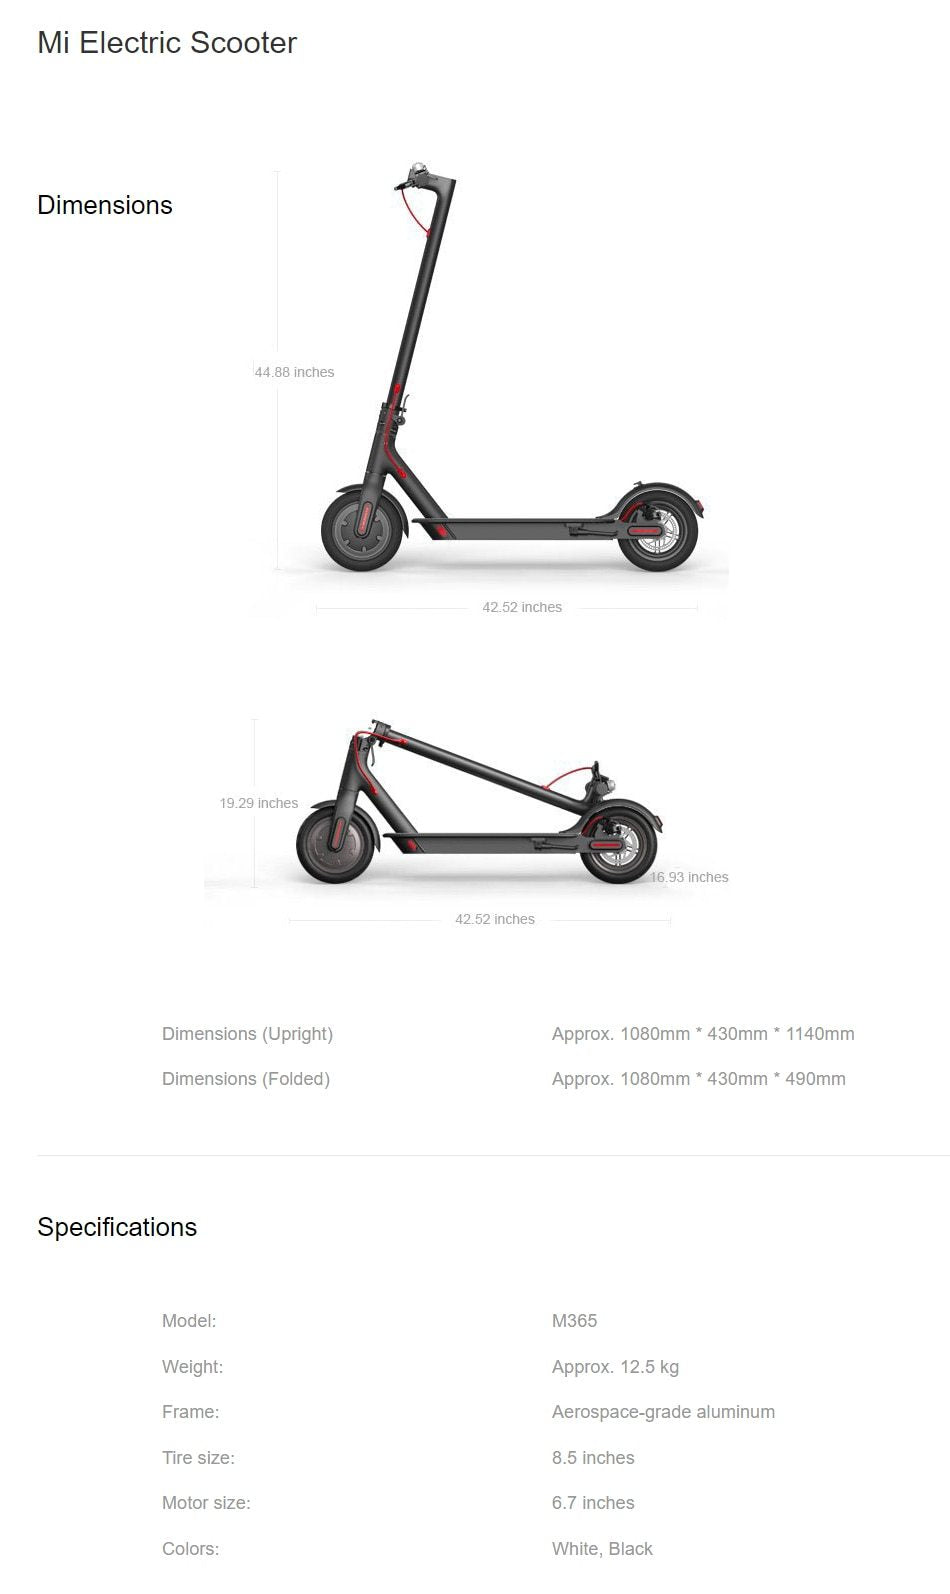 specification of electric scooter